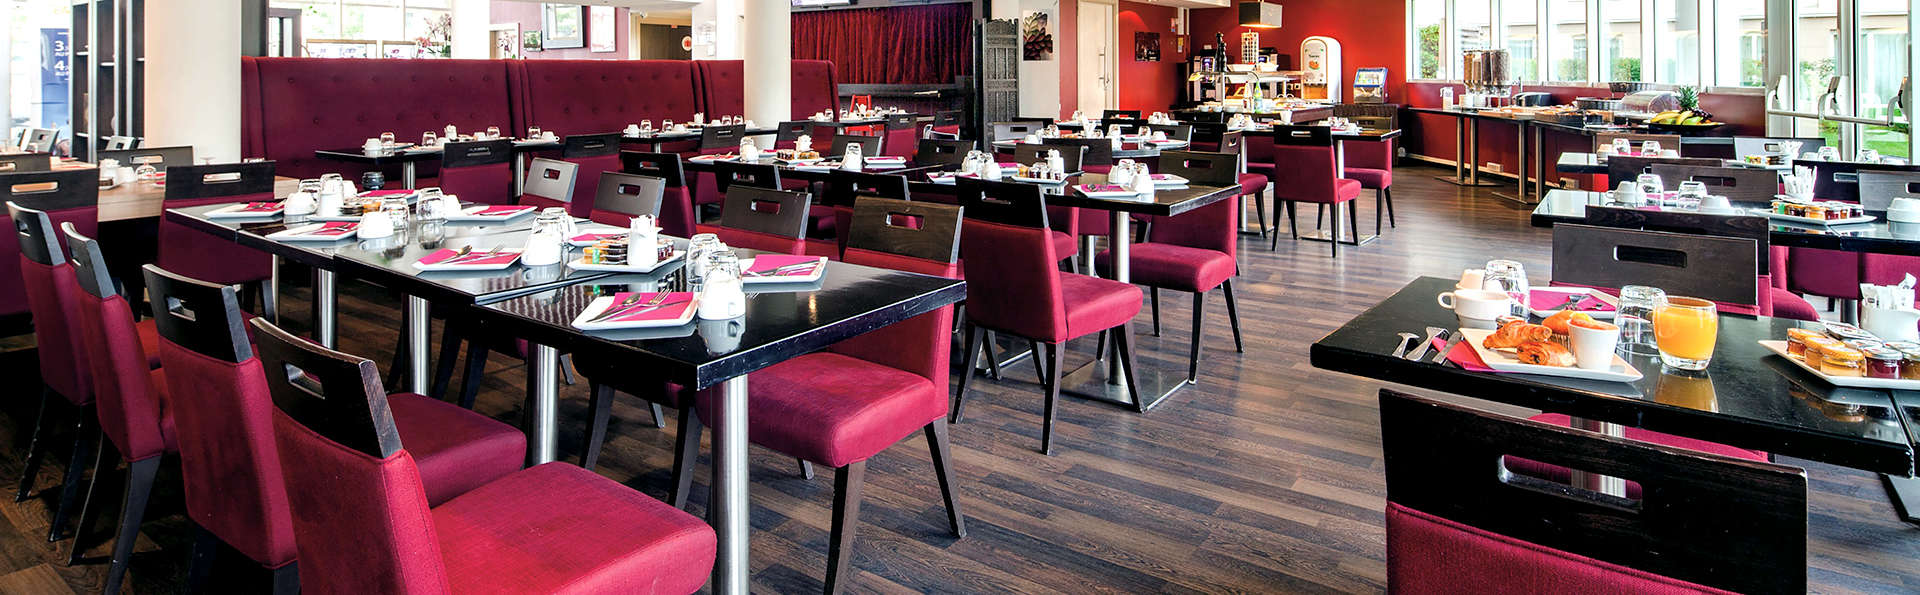 Appart'City Confort Marne La Vallée Val d'Europe  - Edit_Restaurant2.jpg